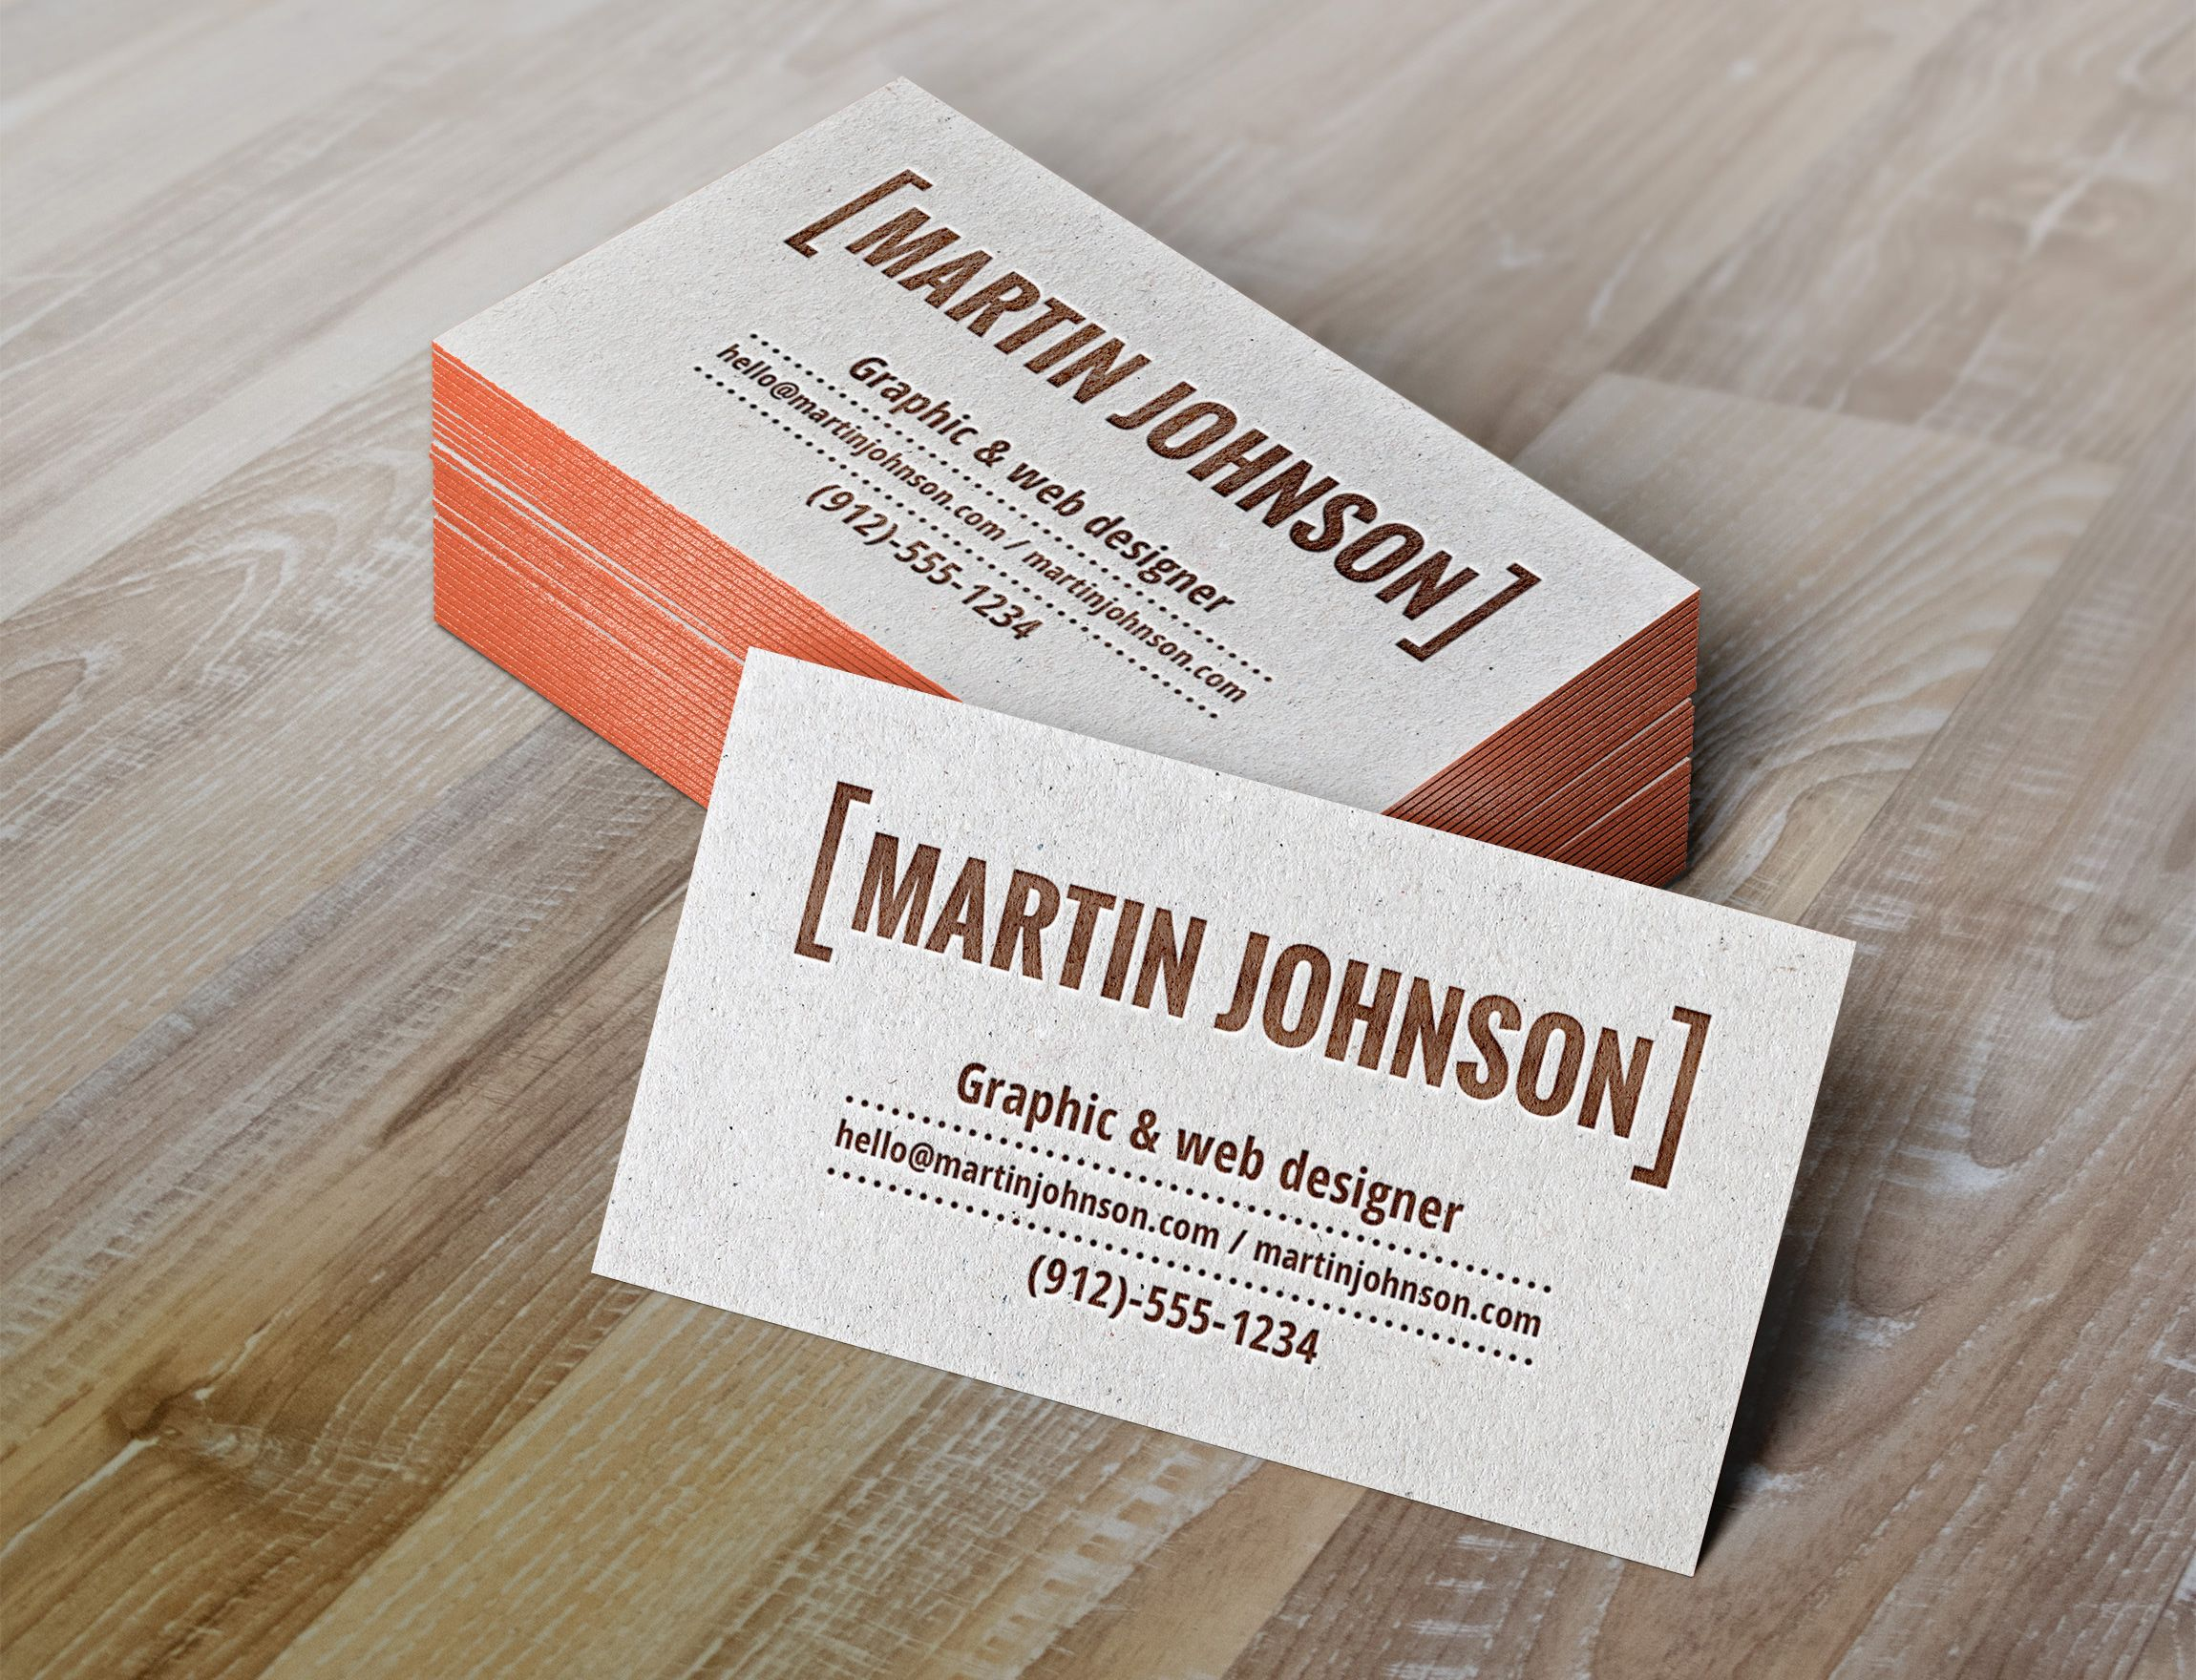 Letterpress free letterpress business cards mockup design freebies a photorealistic psd business card mockup to present your business card design with the unique tactile feel of letterpress printing colourmoves